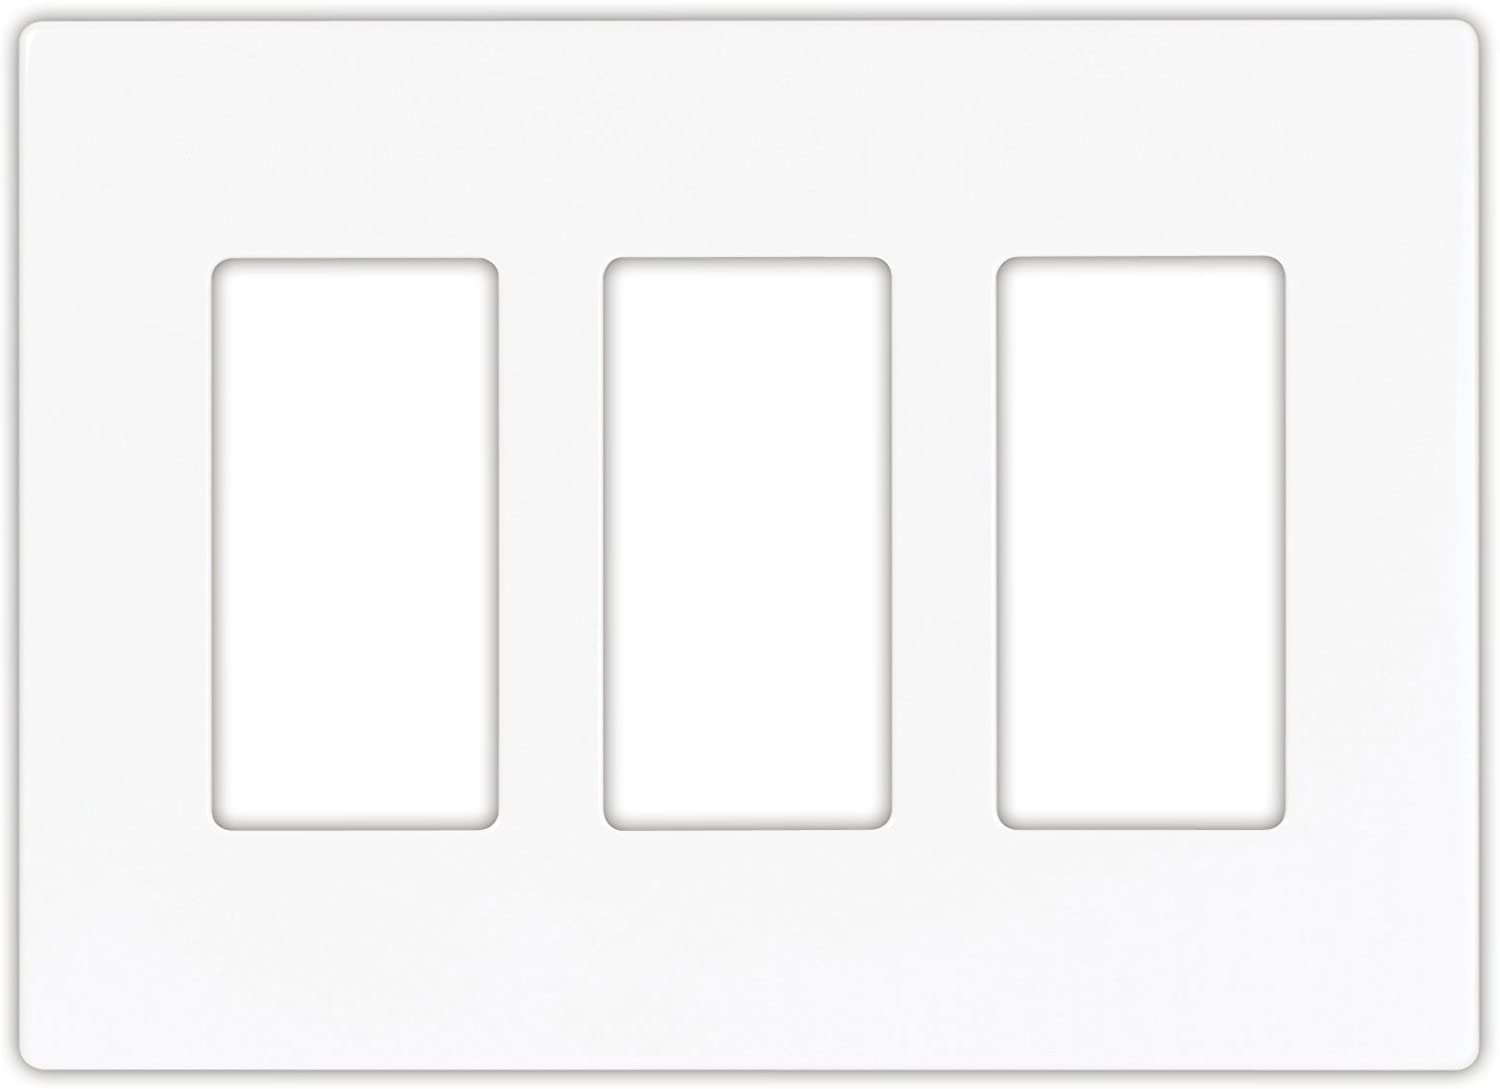 EATON PJS263W Decorative Screwless Wall Plate, 3 Gang, White